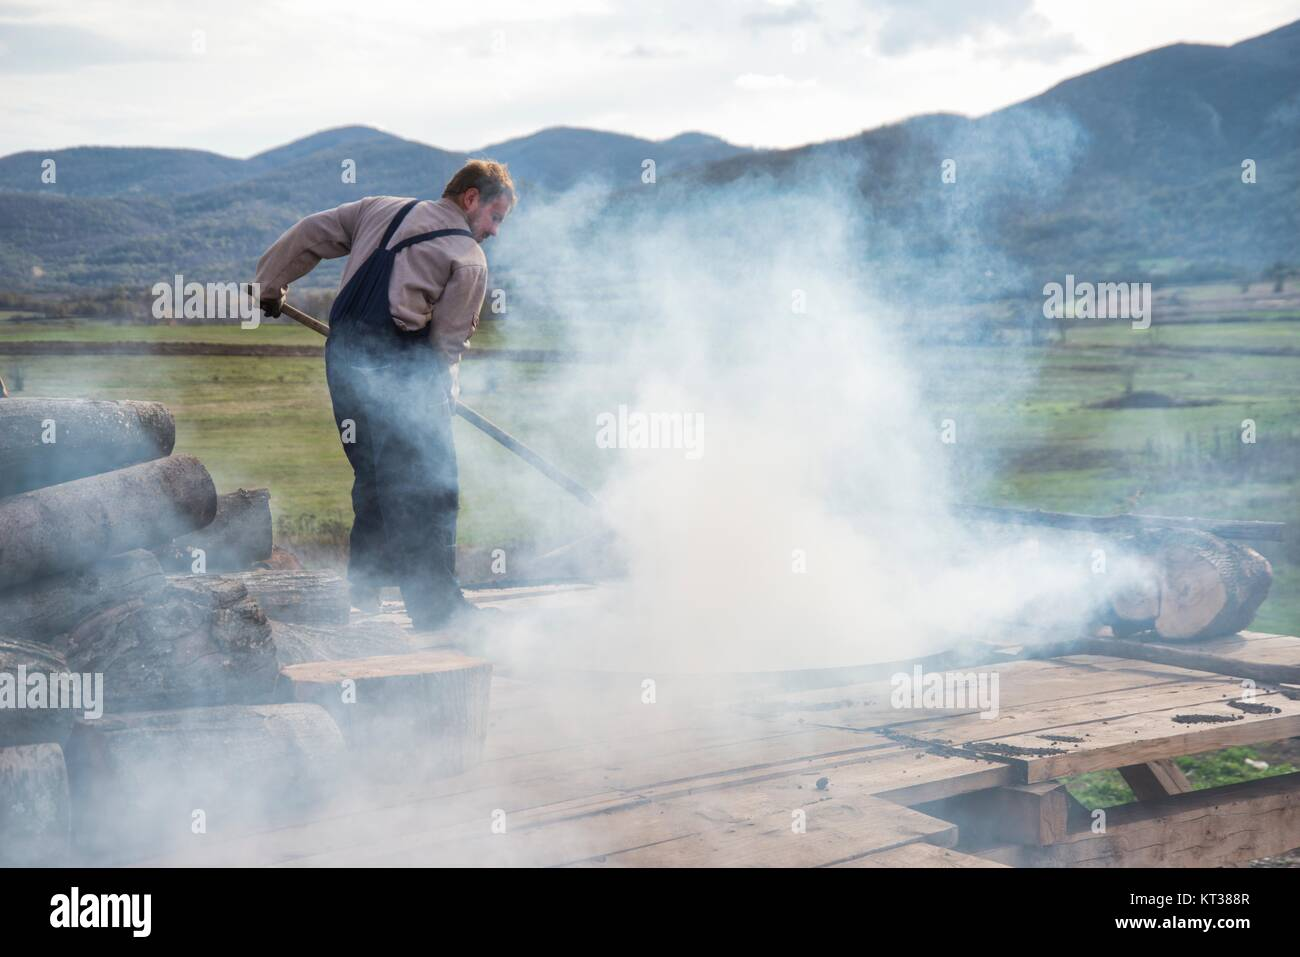 Traditional Charcoal production in rural Boljevac, Serbia - Stock Image